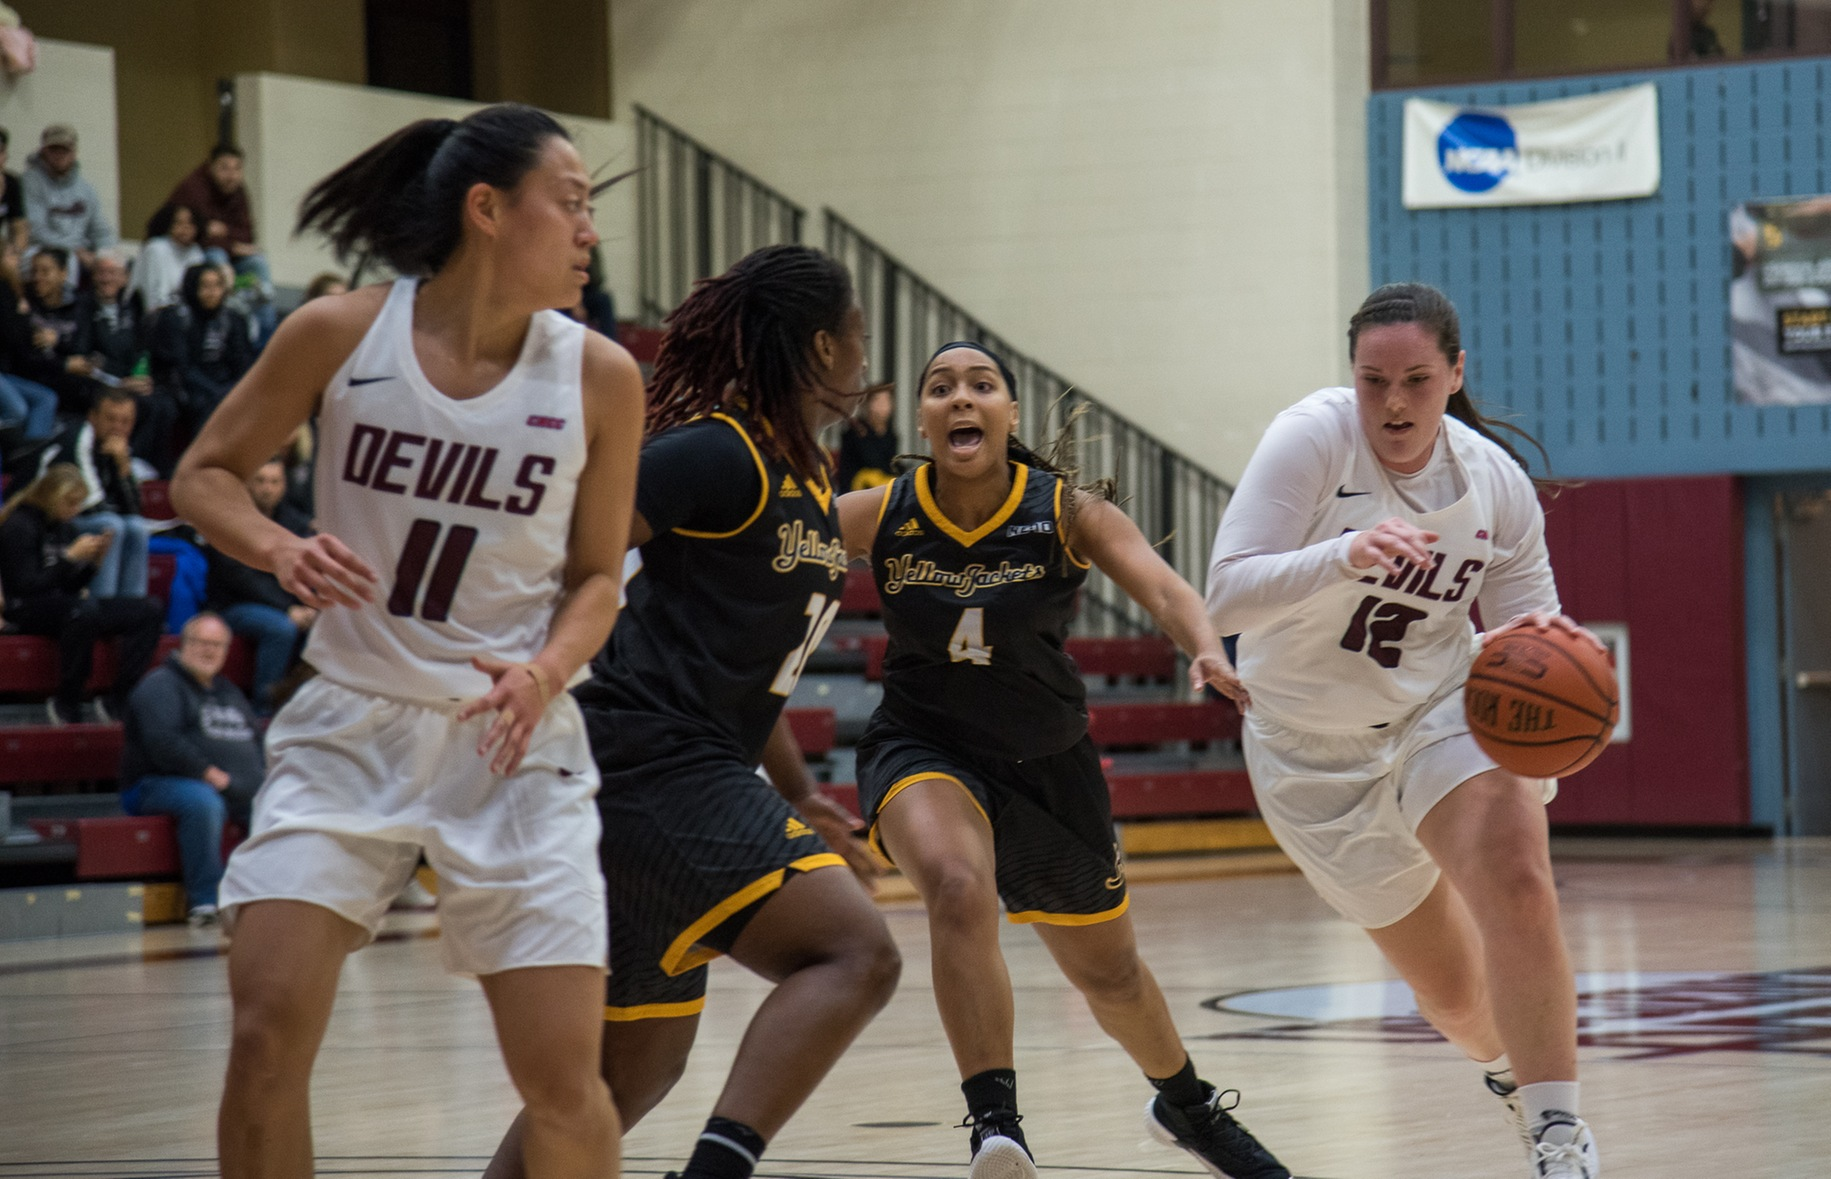 No. 7 Women's Basketball Starts Fast in 78-47 Victory Over Bloomfield